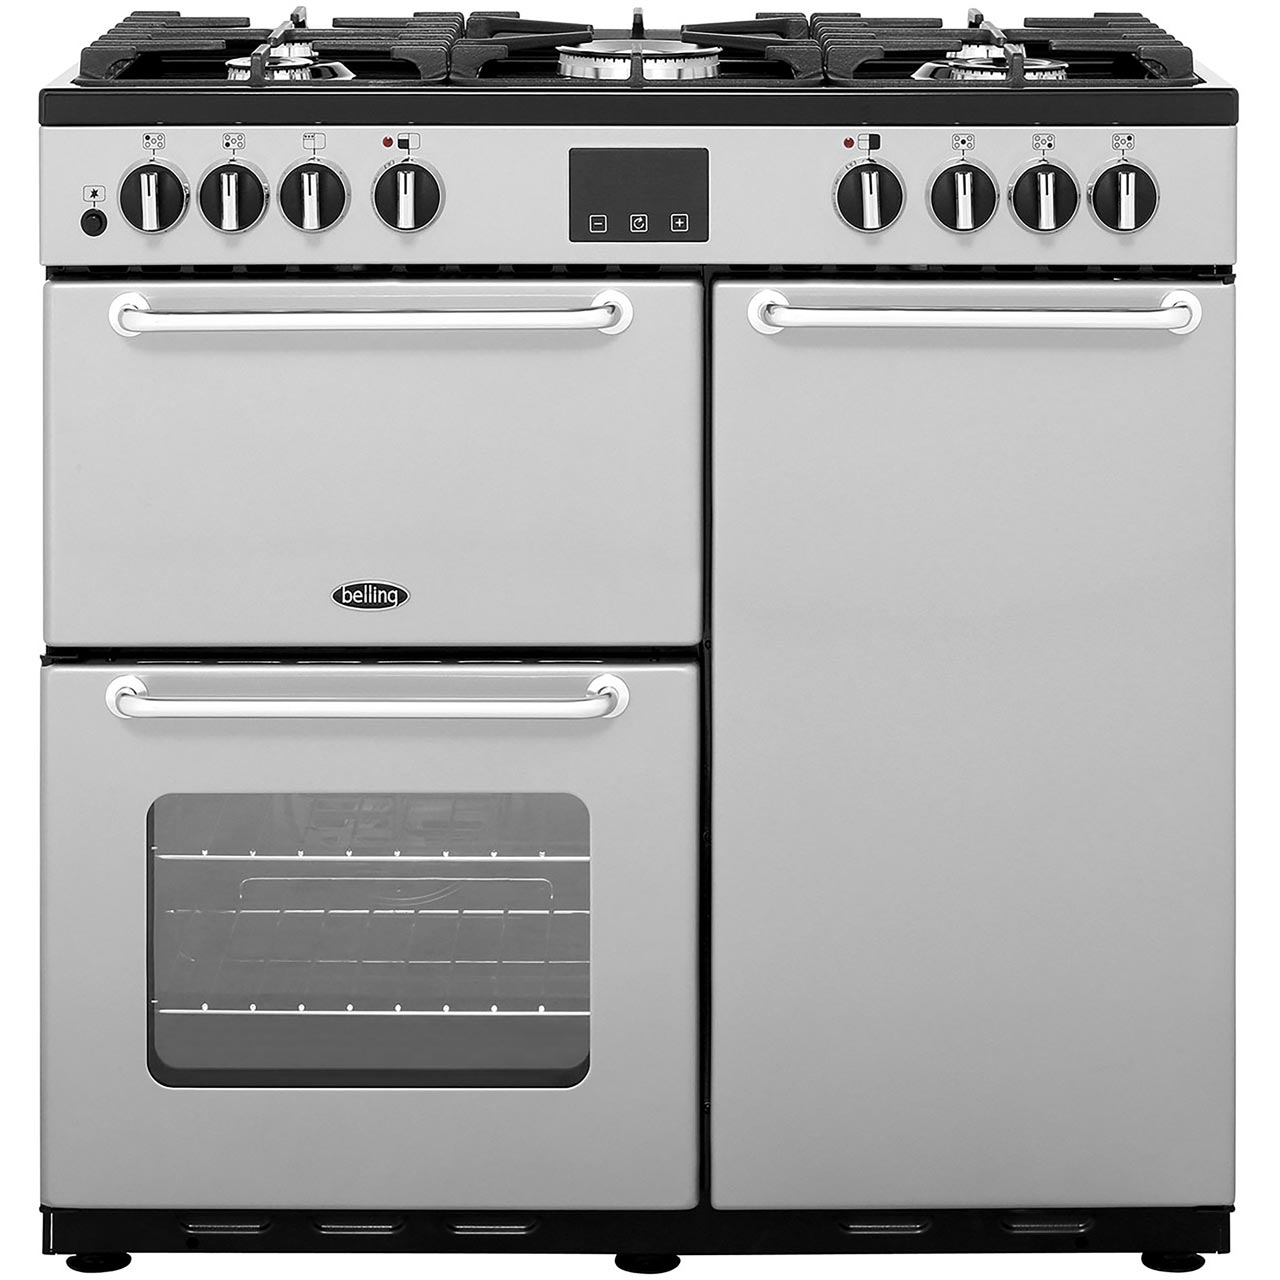 belling electric cooker wiring diagram soap bubble structure or drawing sandringham90dft 90cm 5 burners a dual fuel